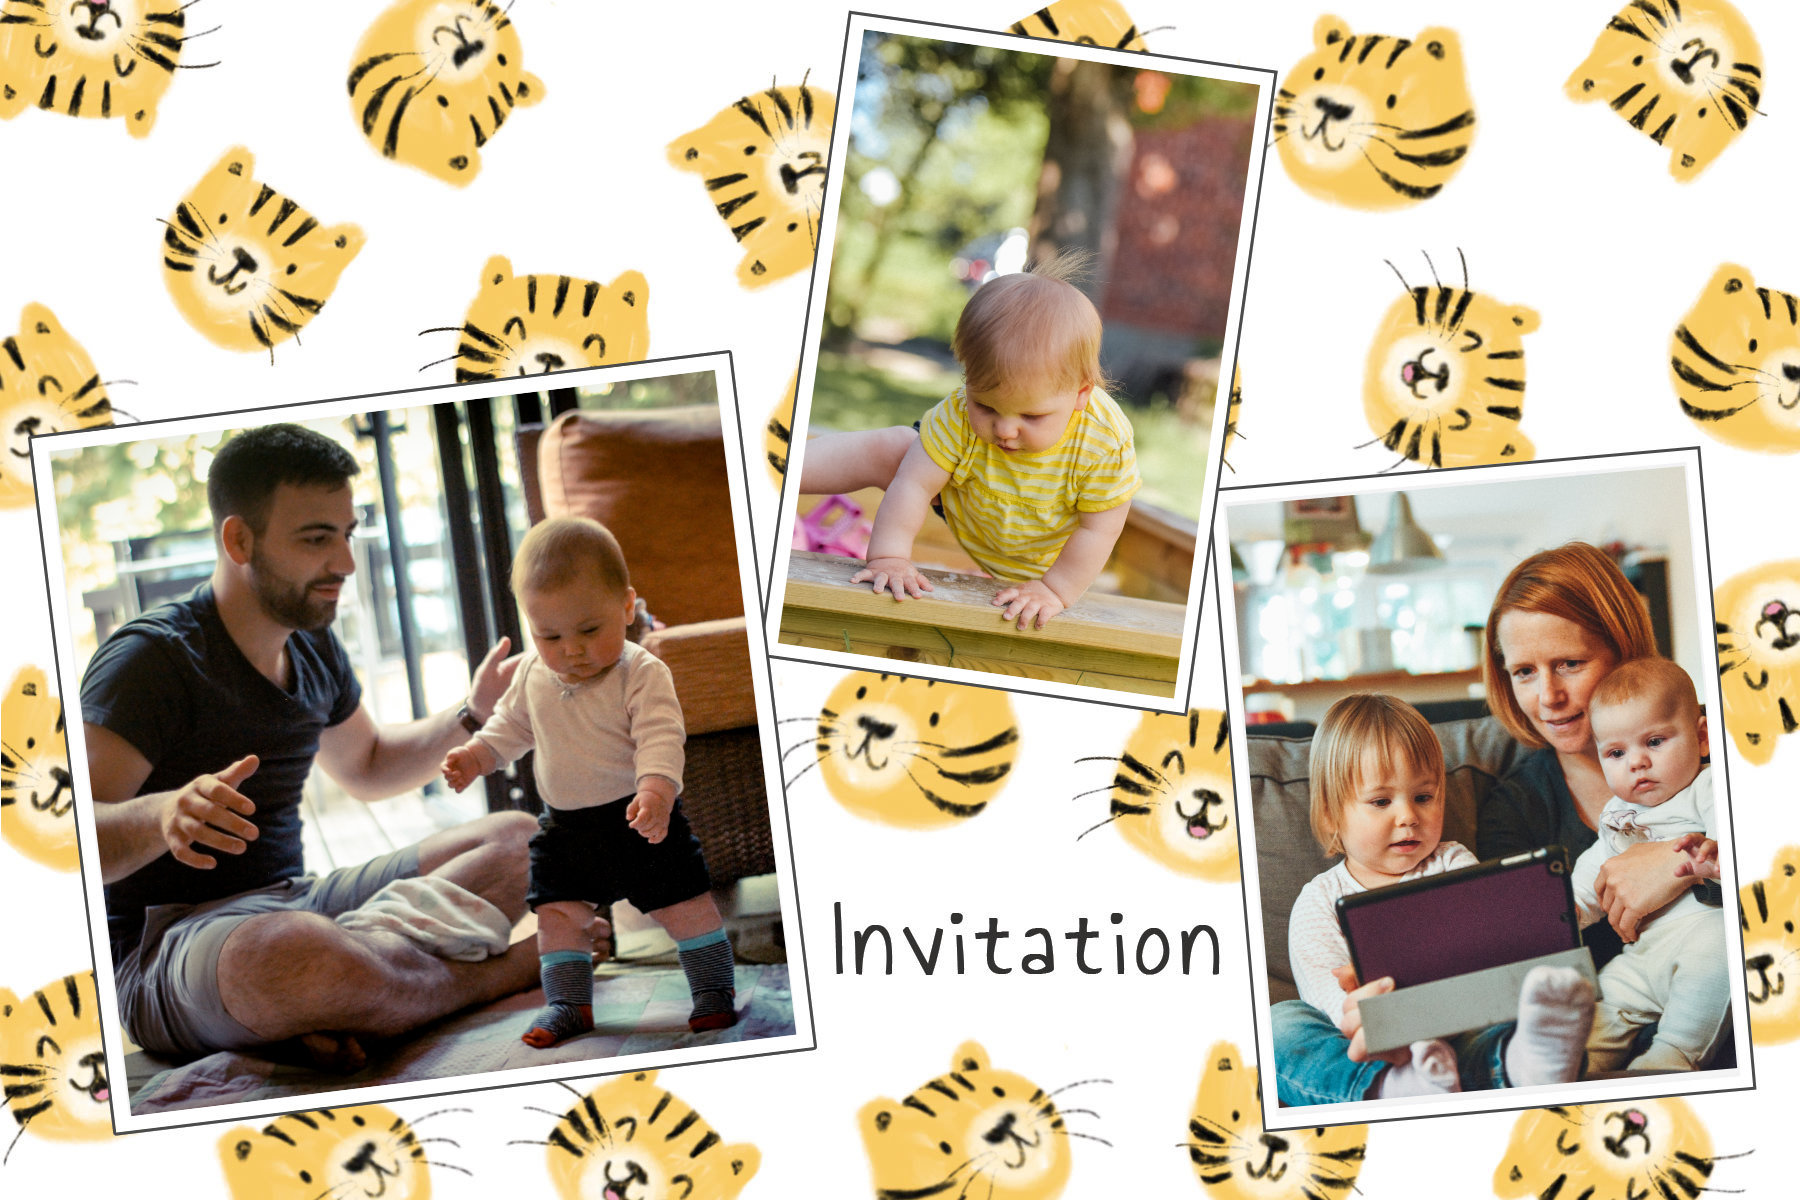 Invitation for children